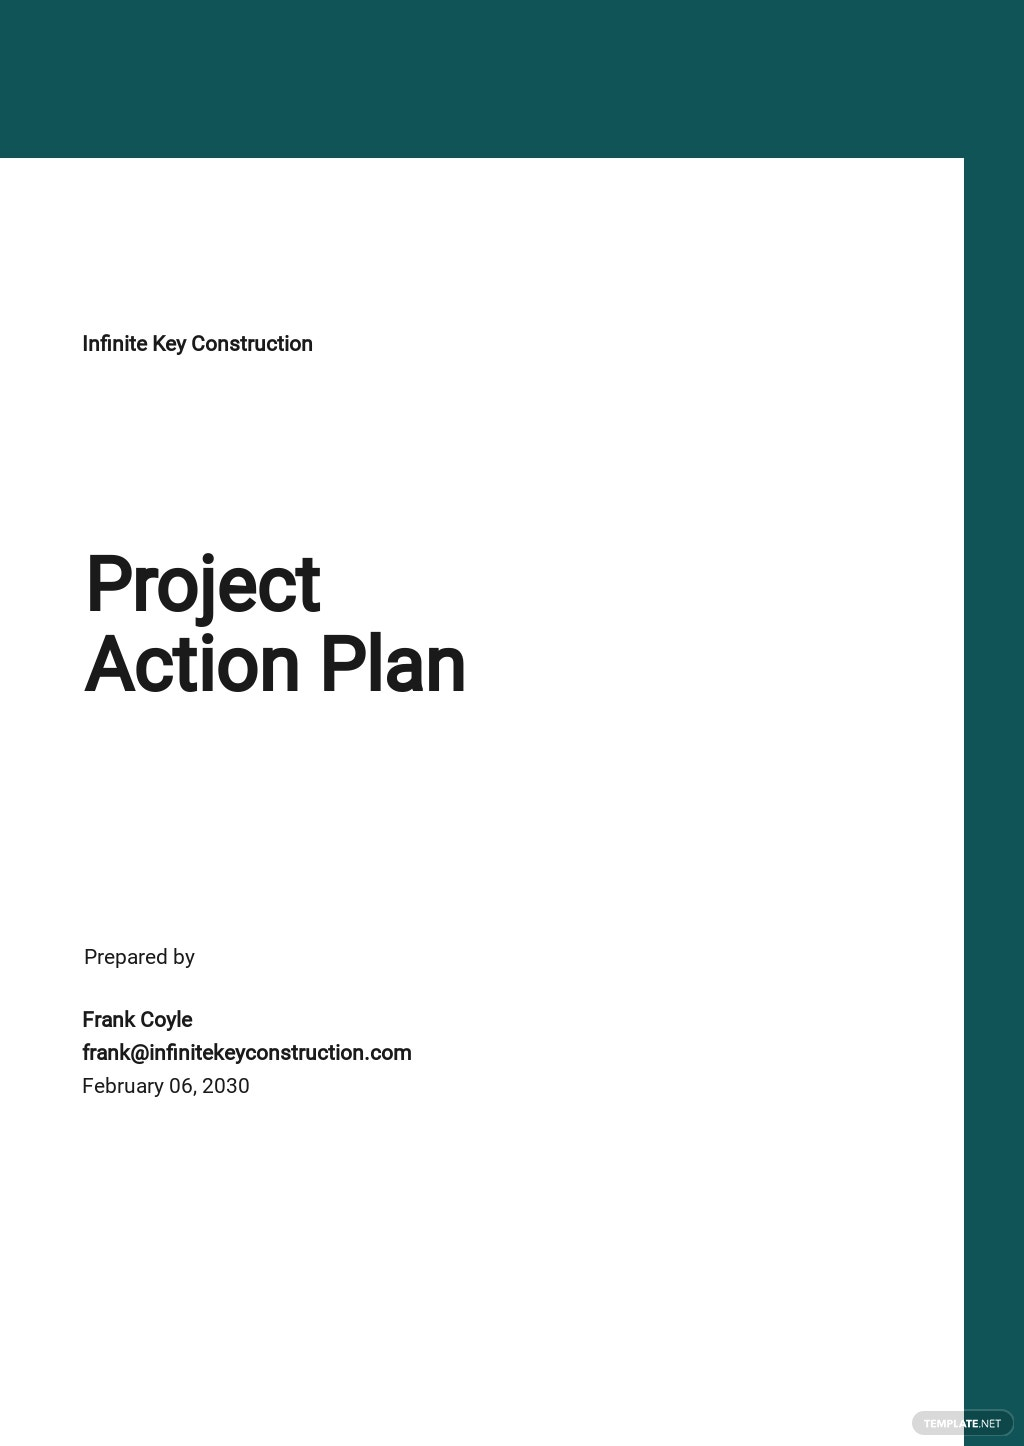 Sample Project Action Plan Template.jpe